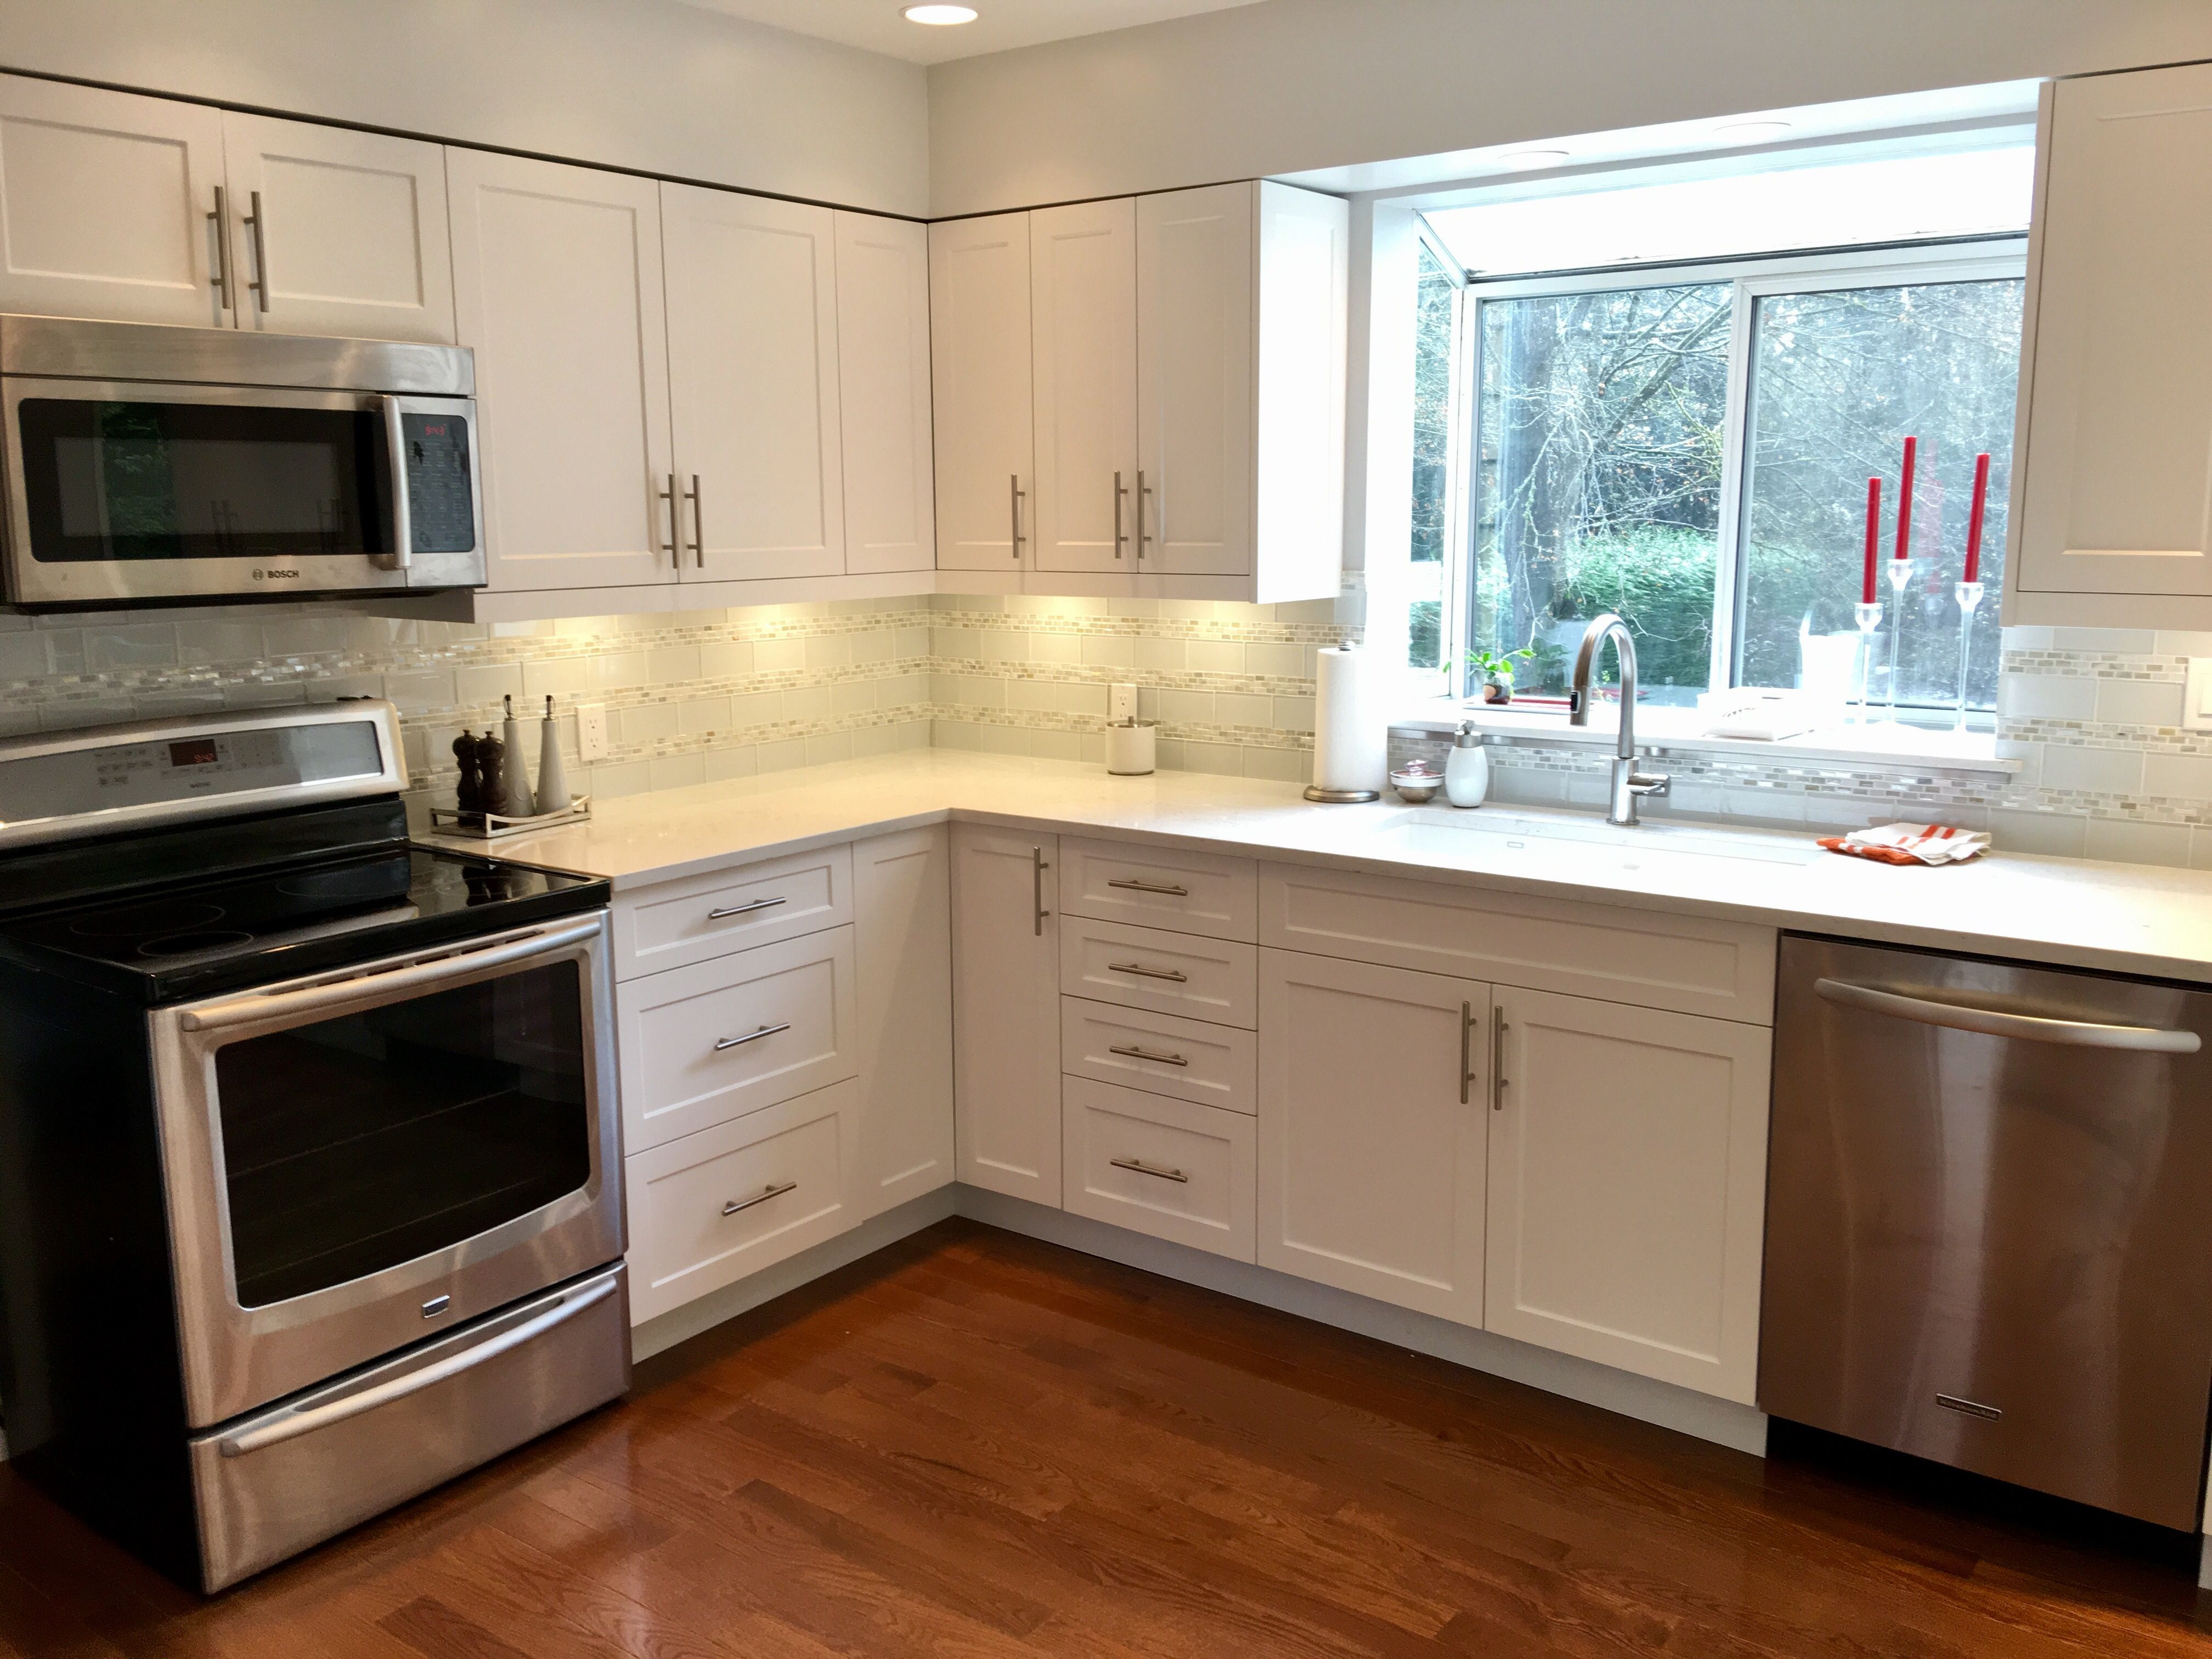 Under Cabinet Lighting Valence For Led Dals Pucks Added White Shaker Cabinets Kitchen Layout 10x10 Kitchen Home Depot Kitchen